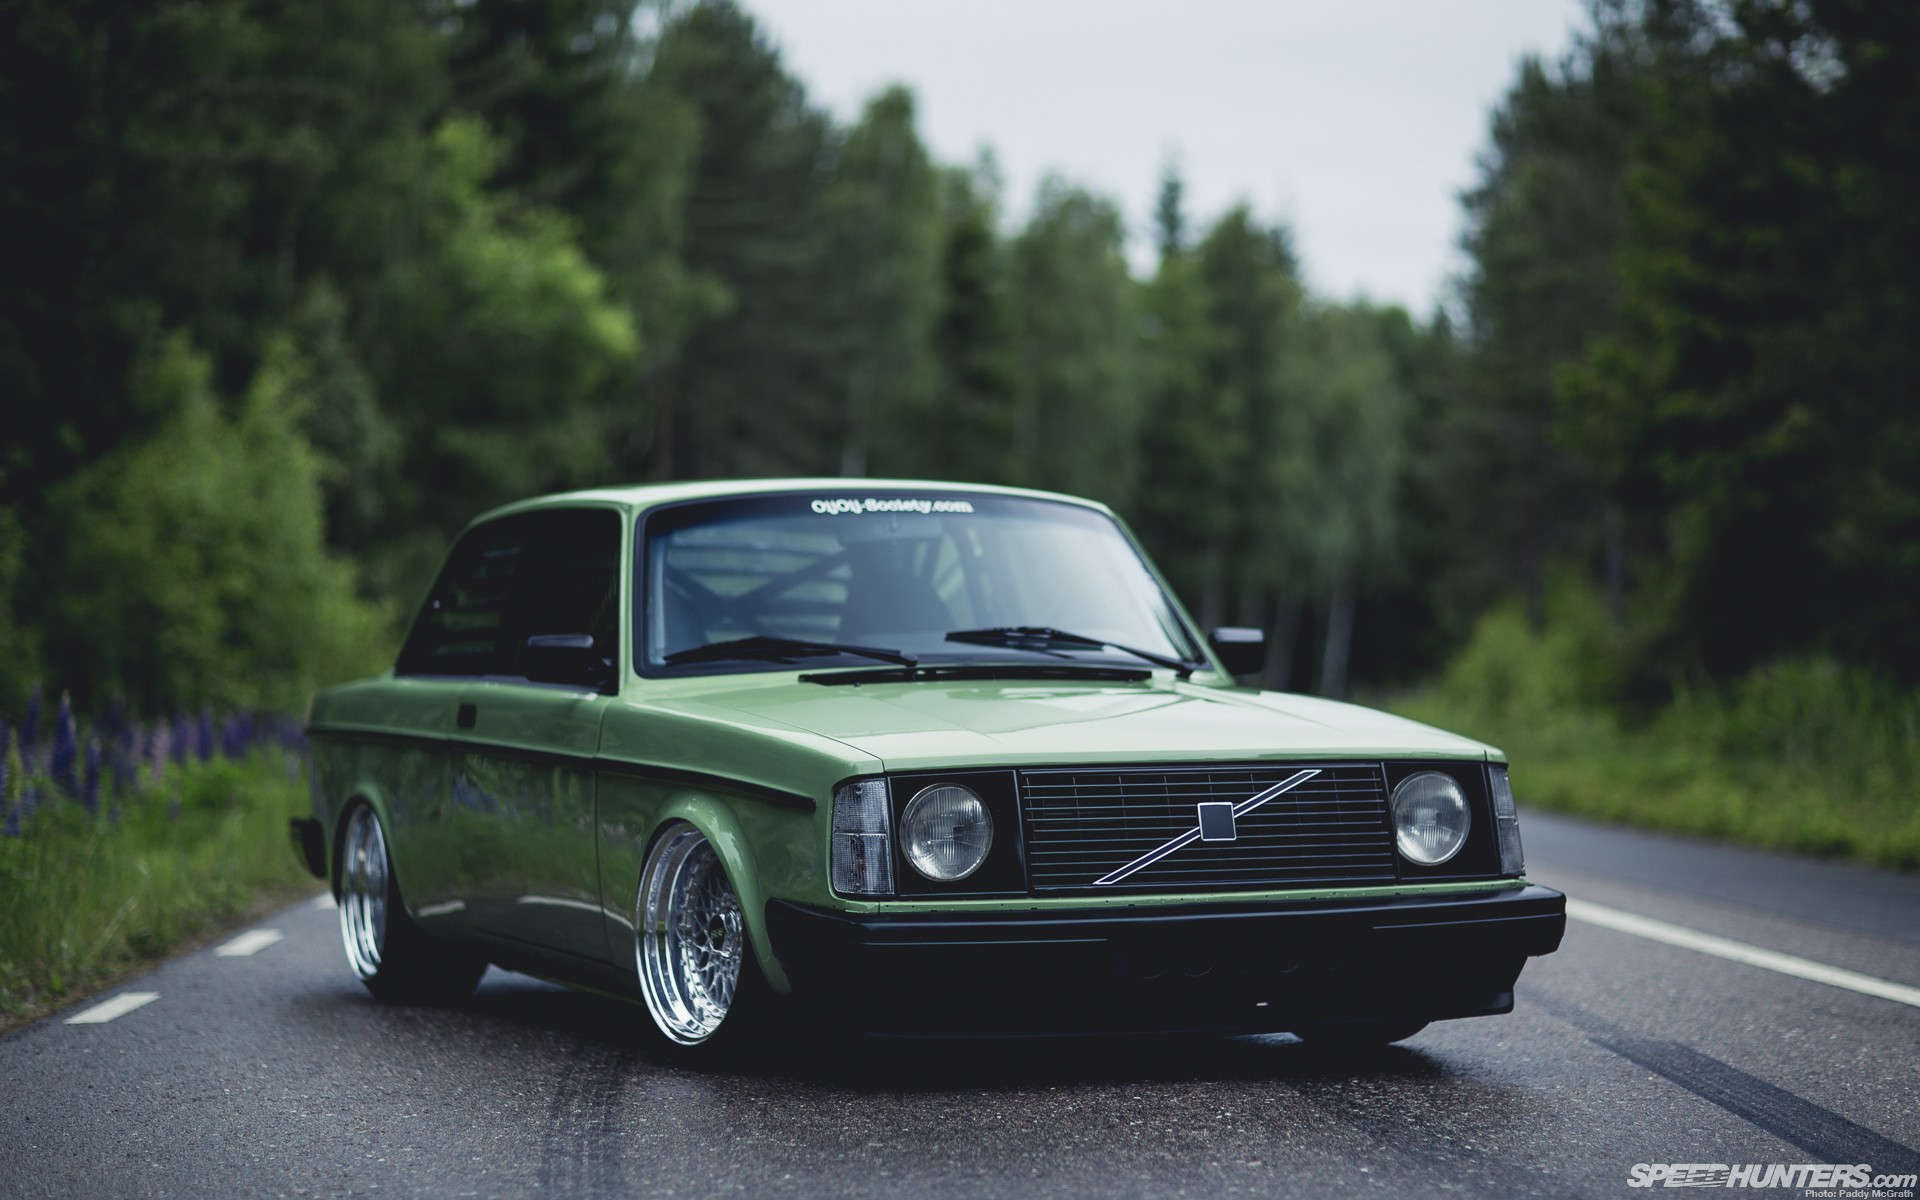 old cars Volvo outdoors roads tuning Volvo 242 Wallpapers 1920x1200